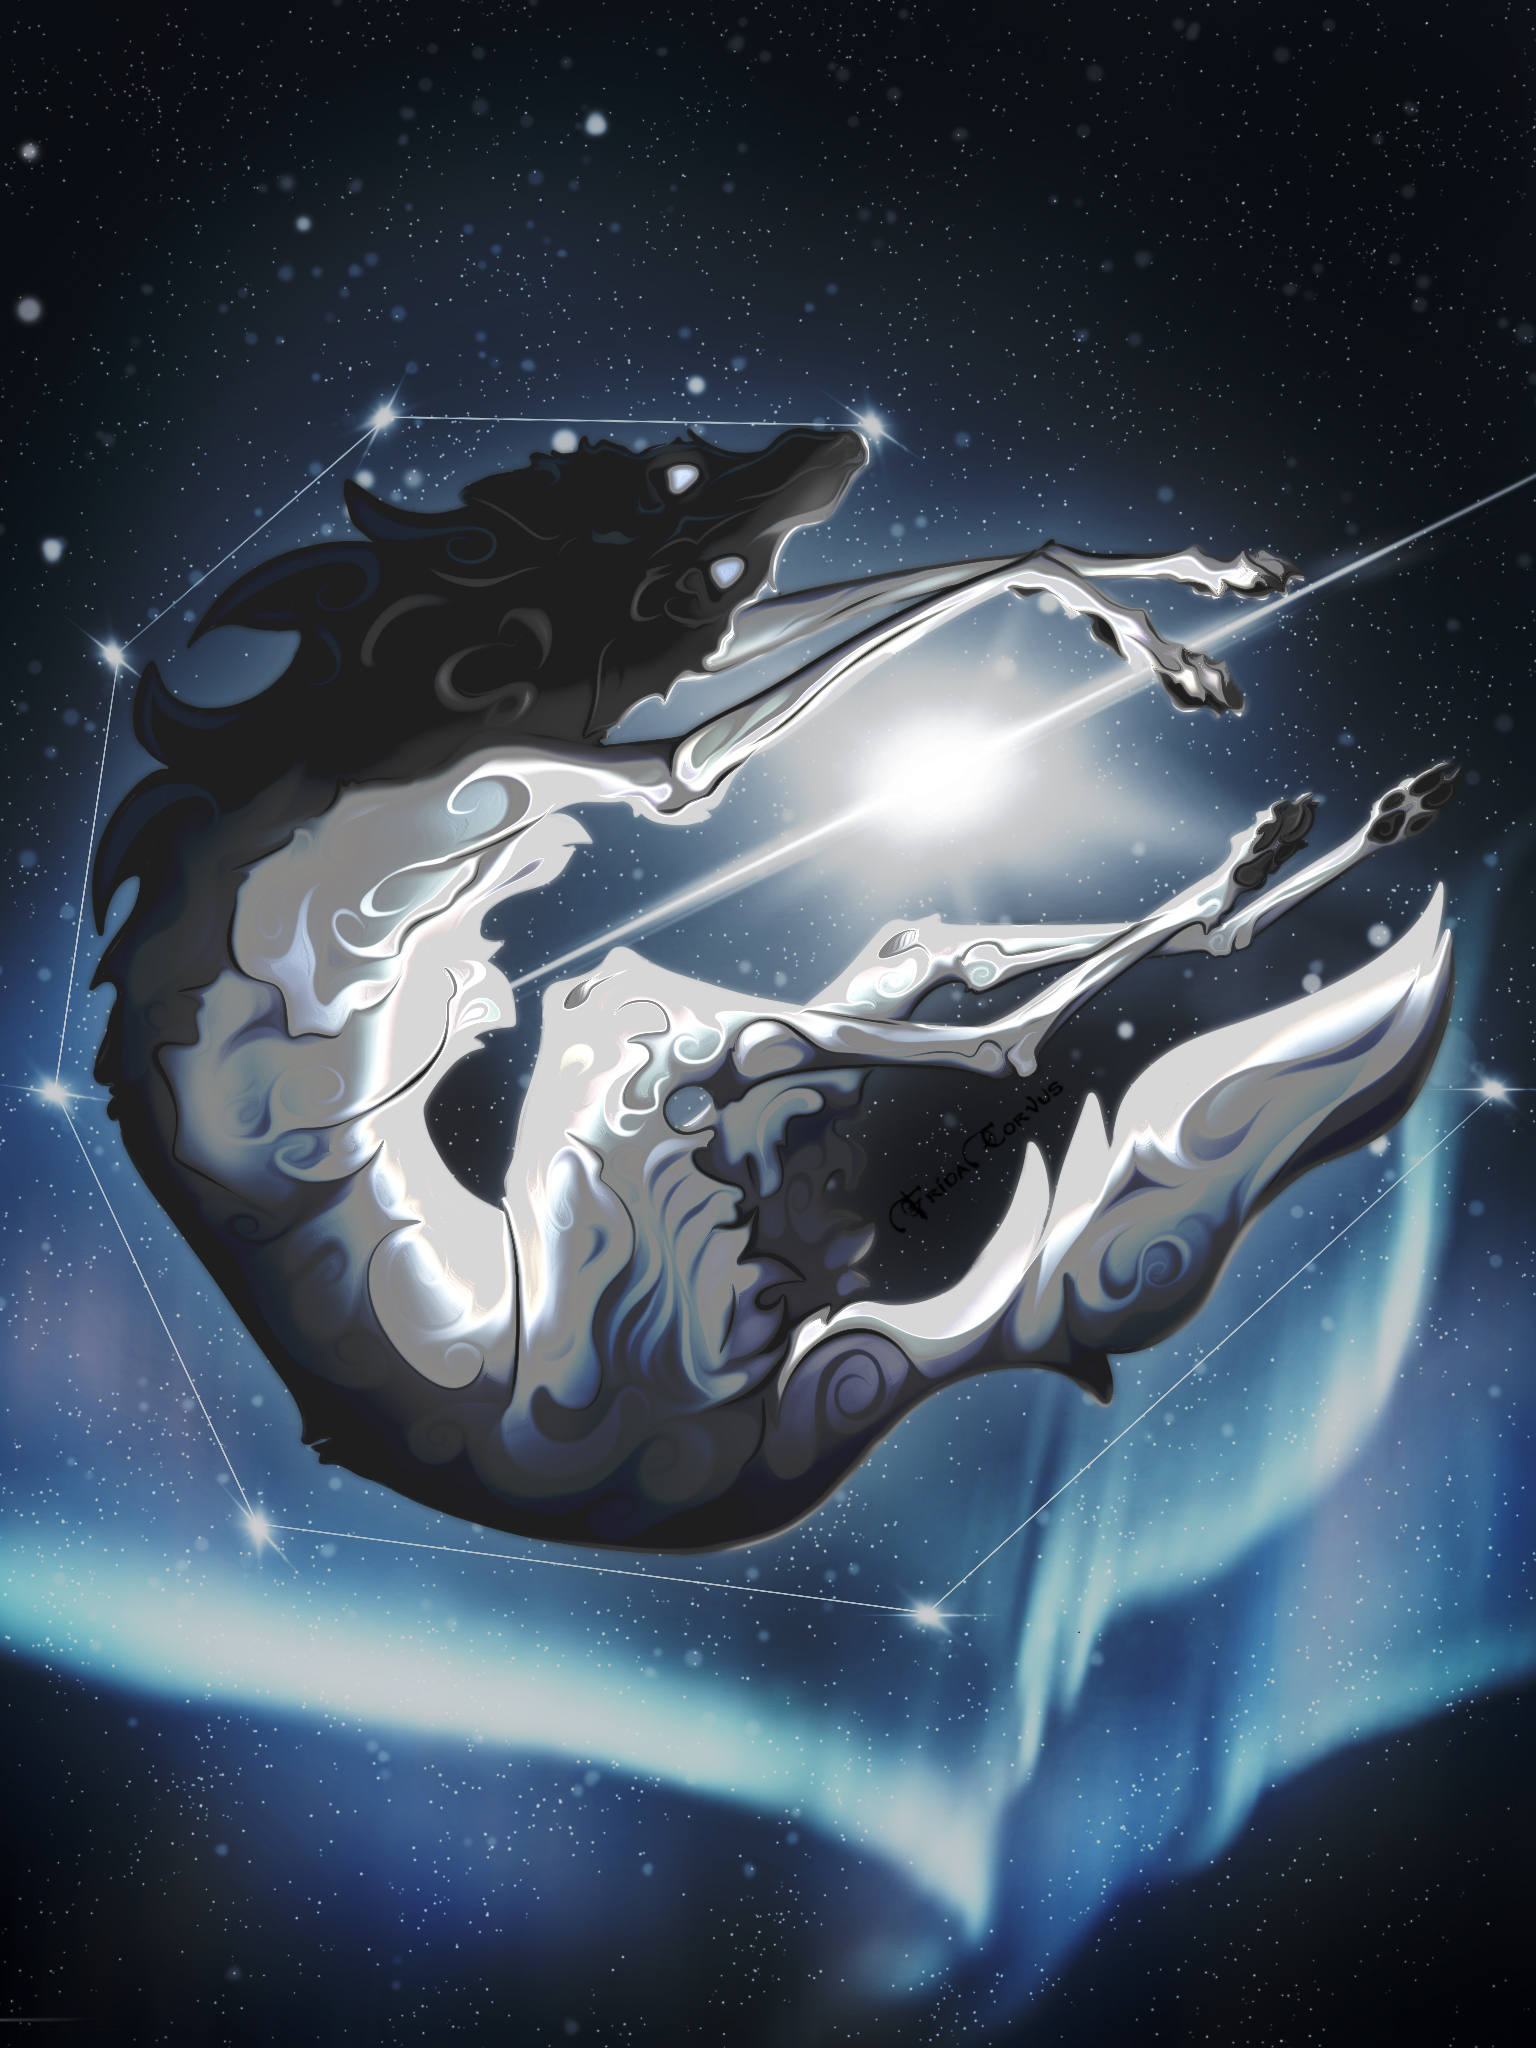 YCH: Among the stars